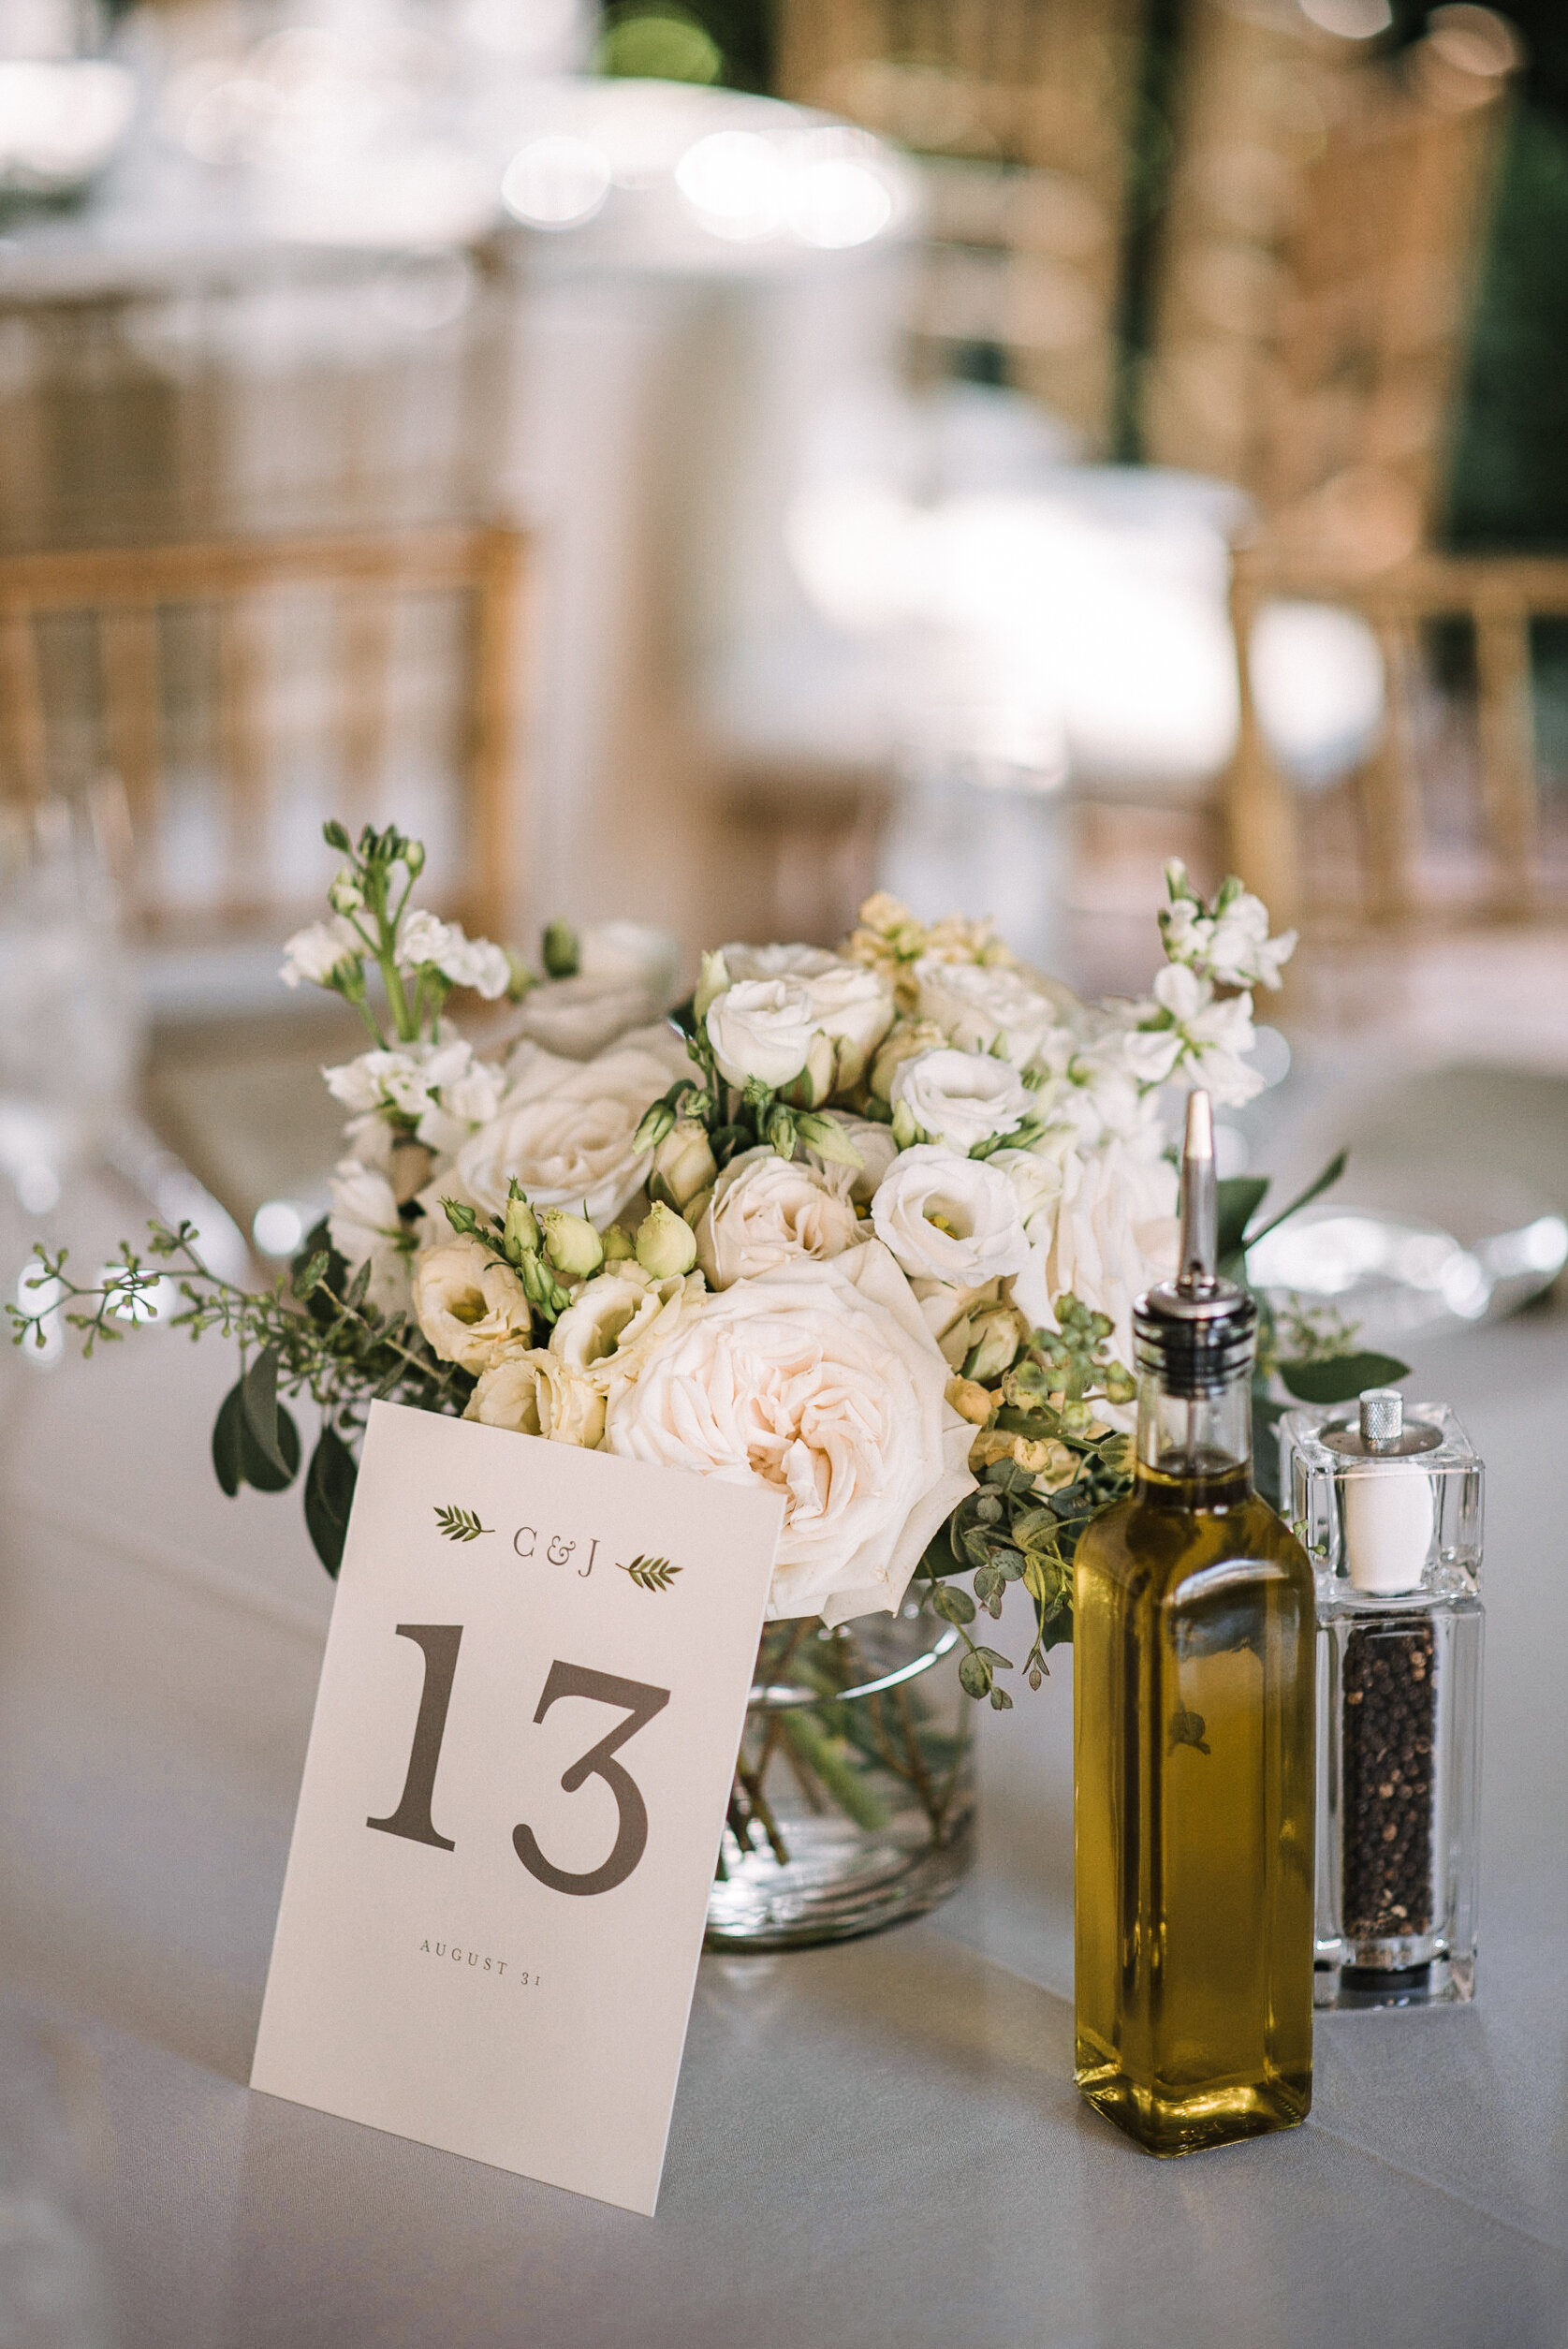 Reception table details at Birkby House